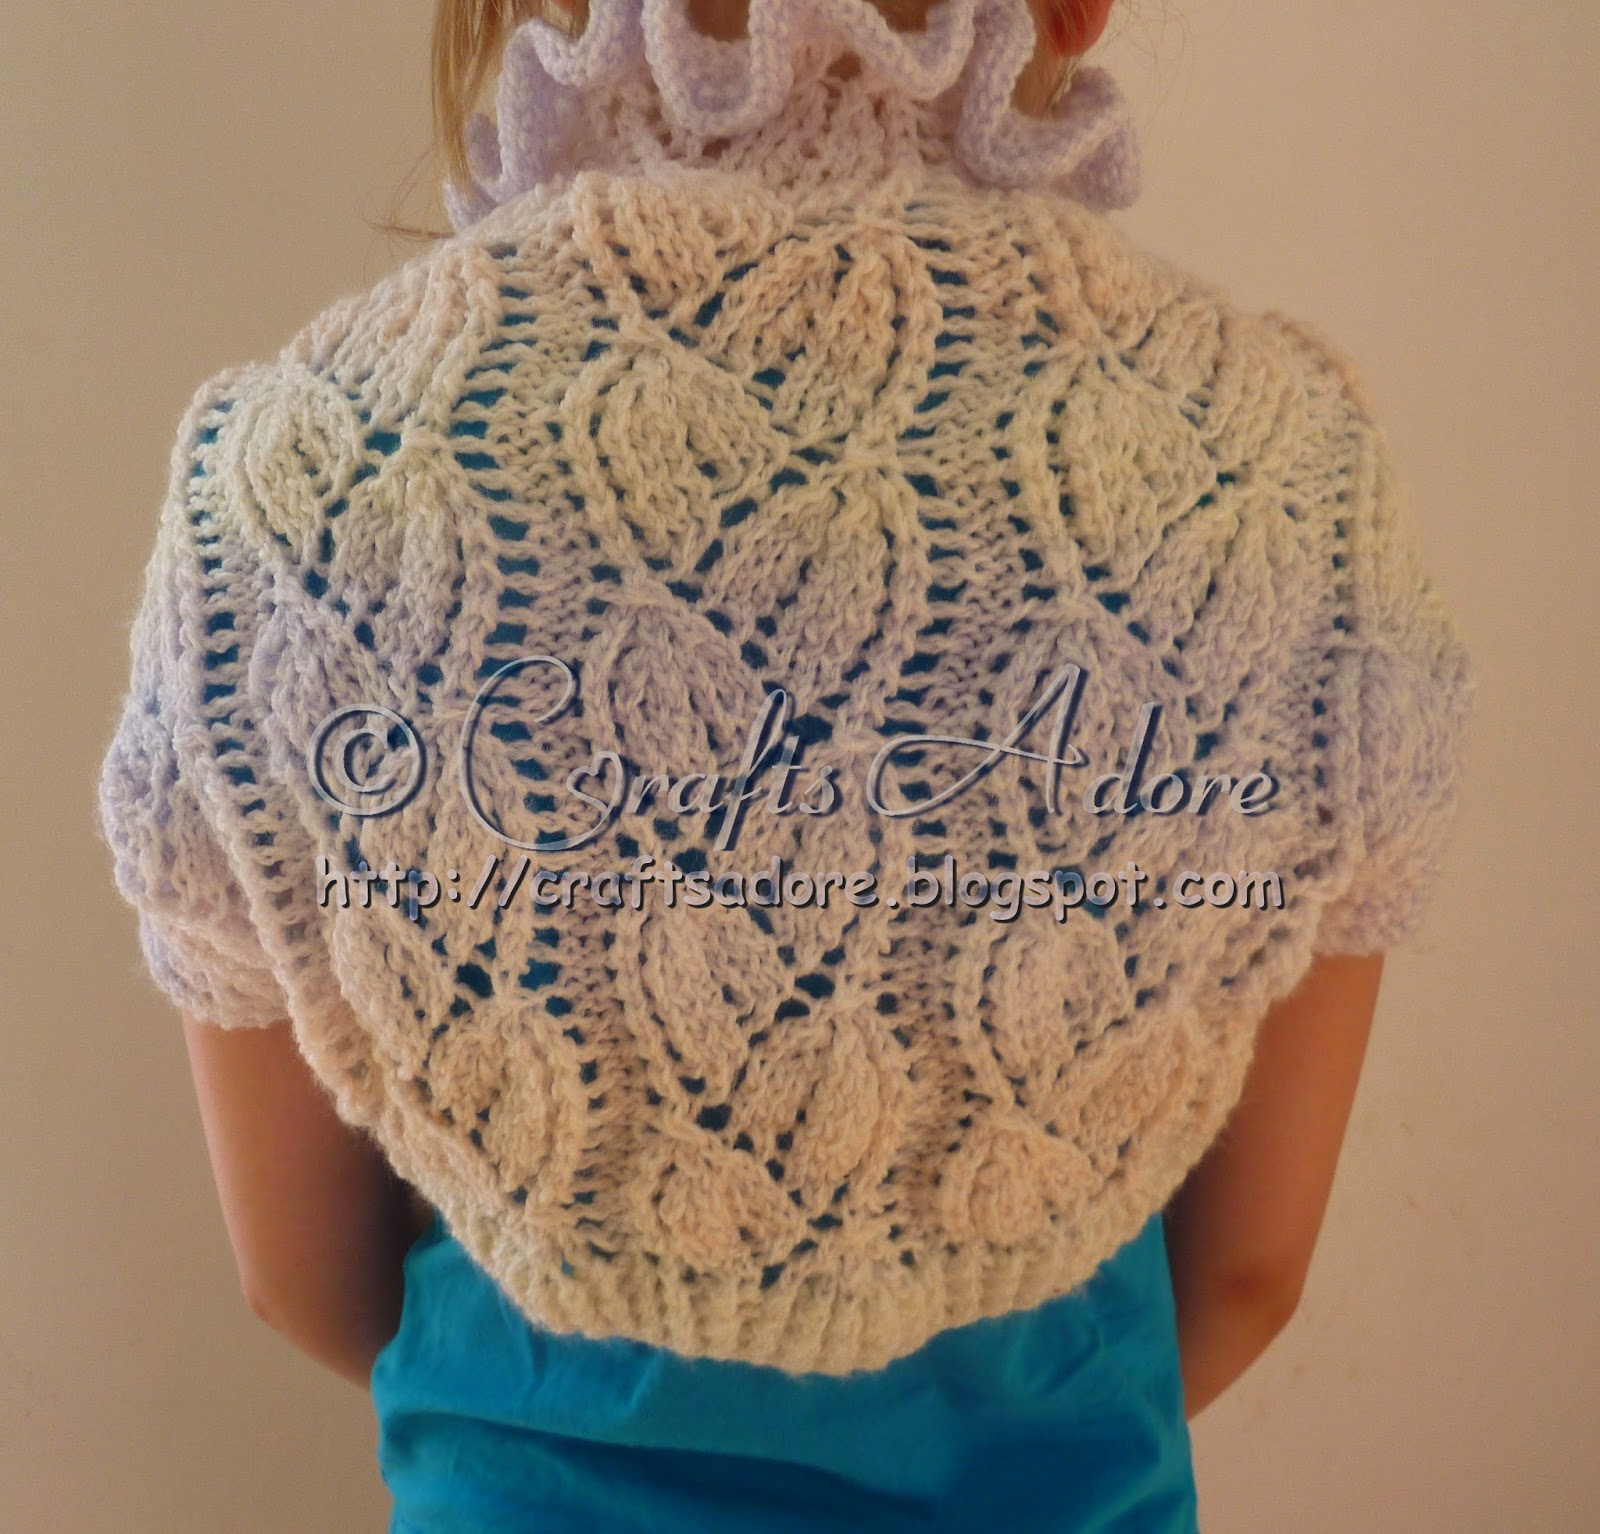 Free Knitting Pattern For Girls Bolero : CraftsAdore: Knitted Girl Lacy Bellflowers Shrug Free Knitting Pattern